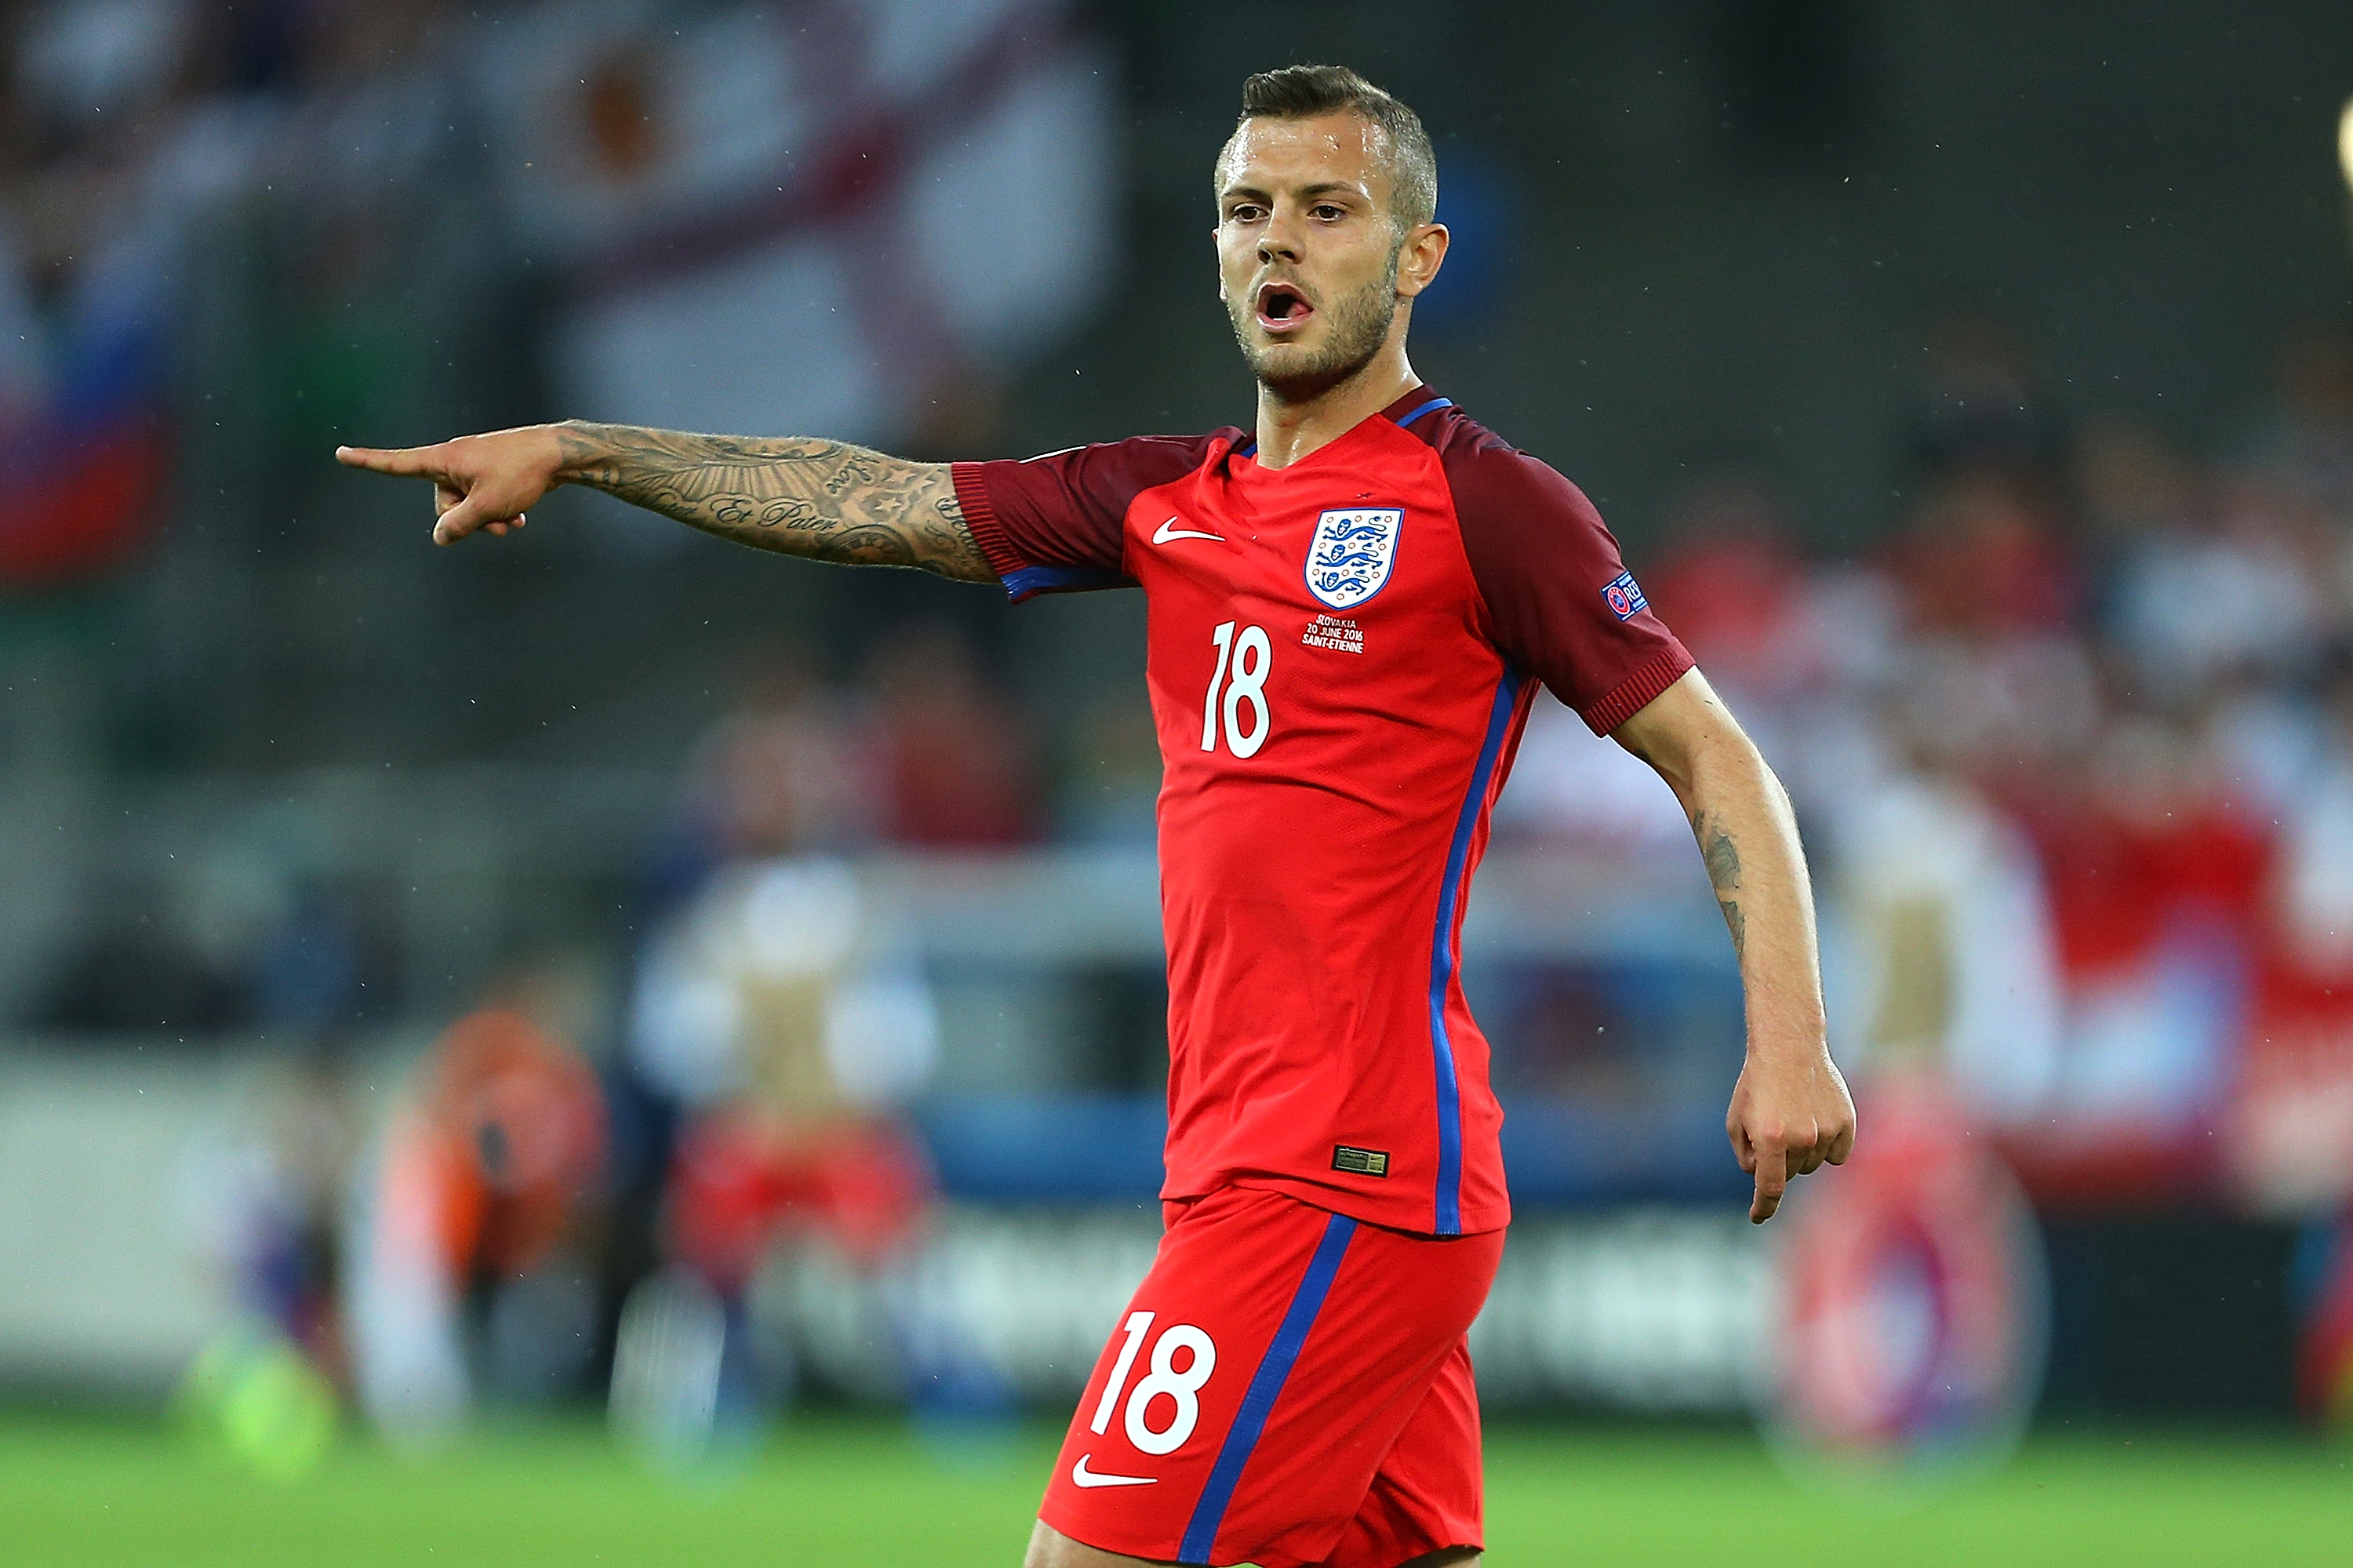 Arsenal: No Risk Involved In Jack Wilshere Bournemouth Loan